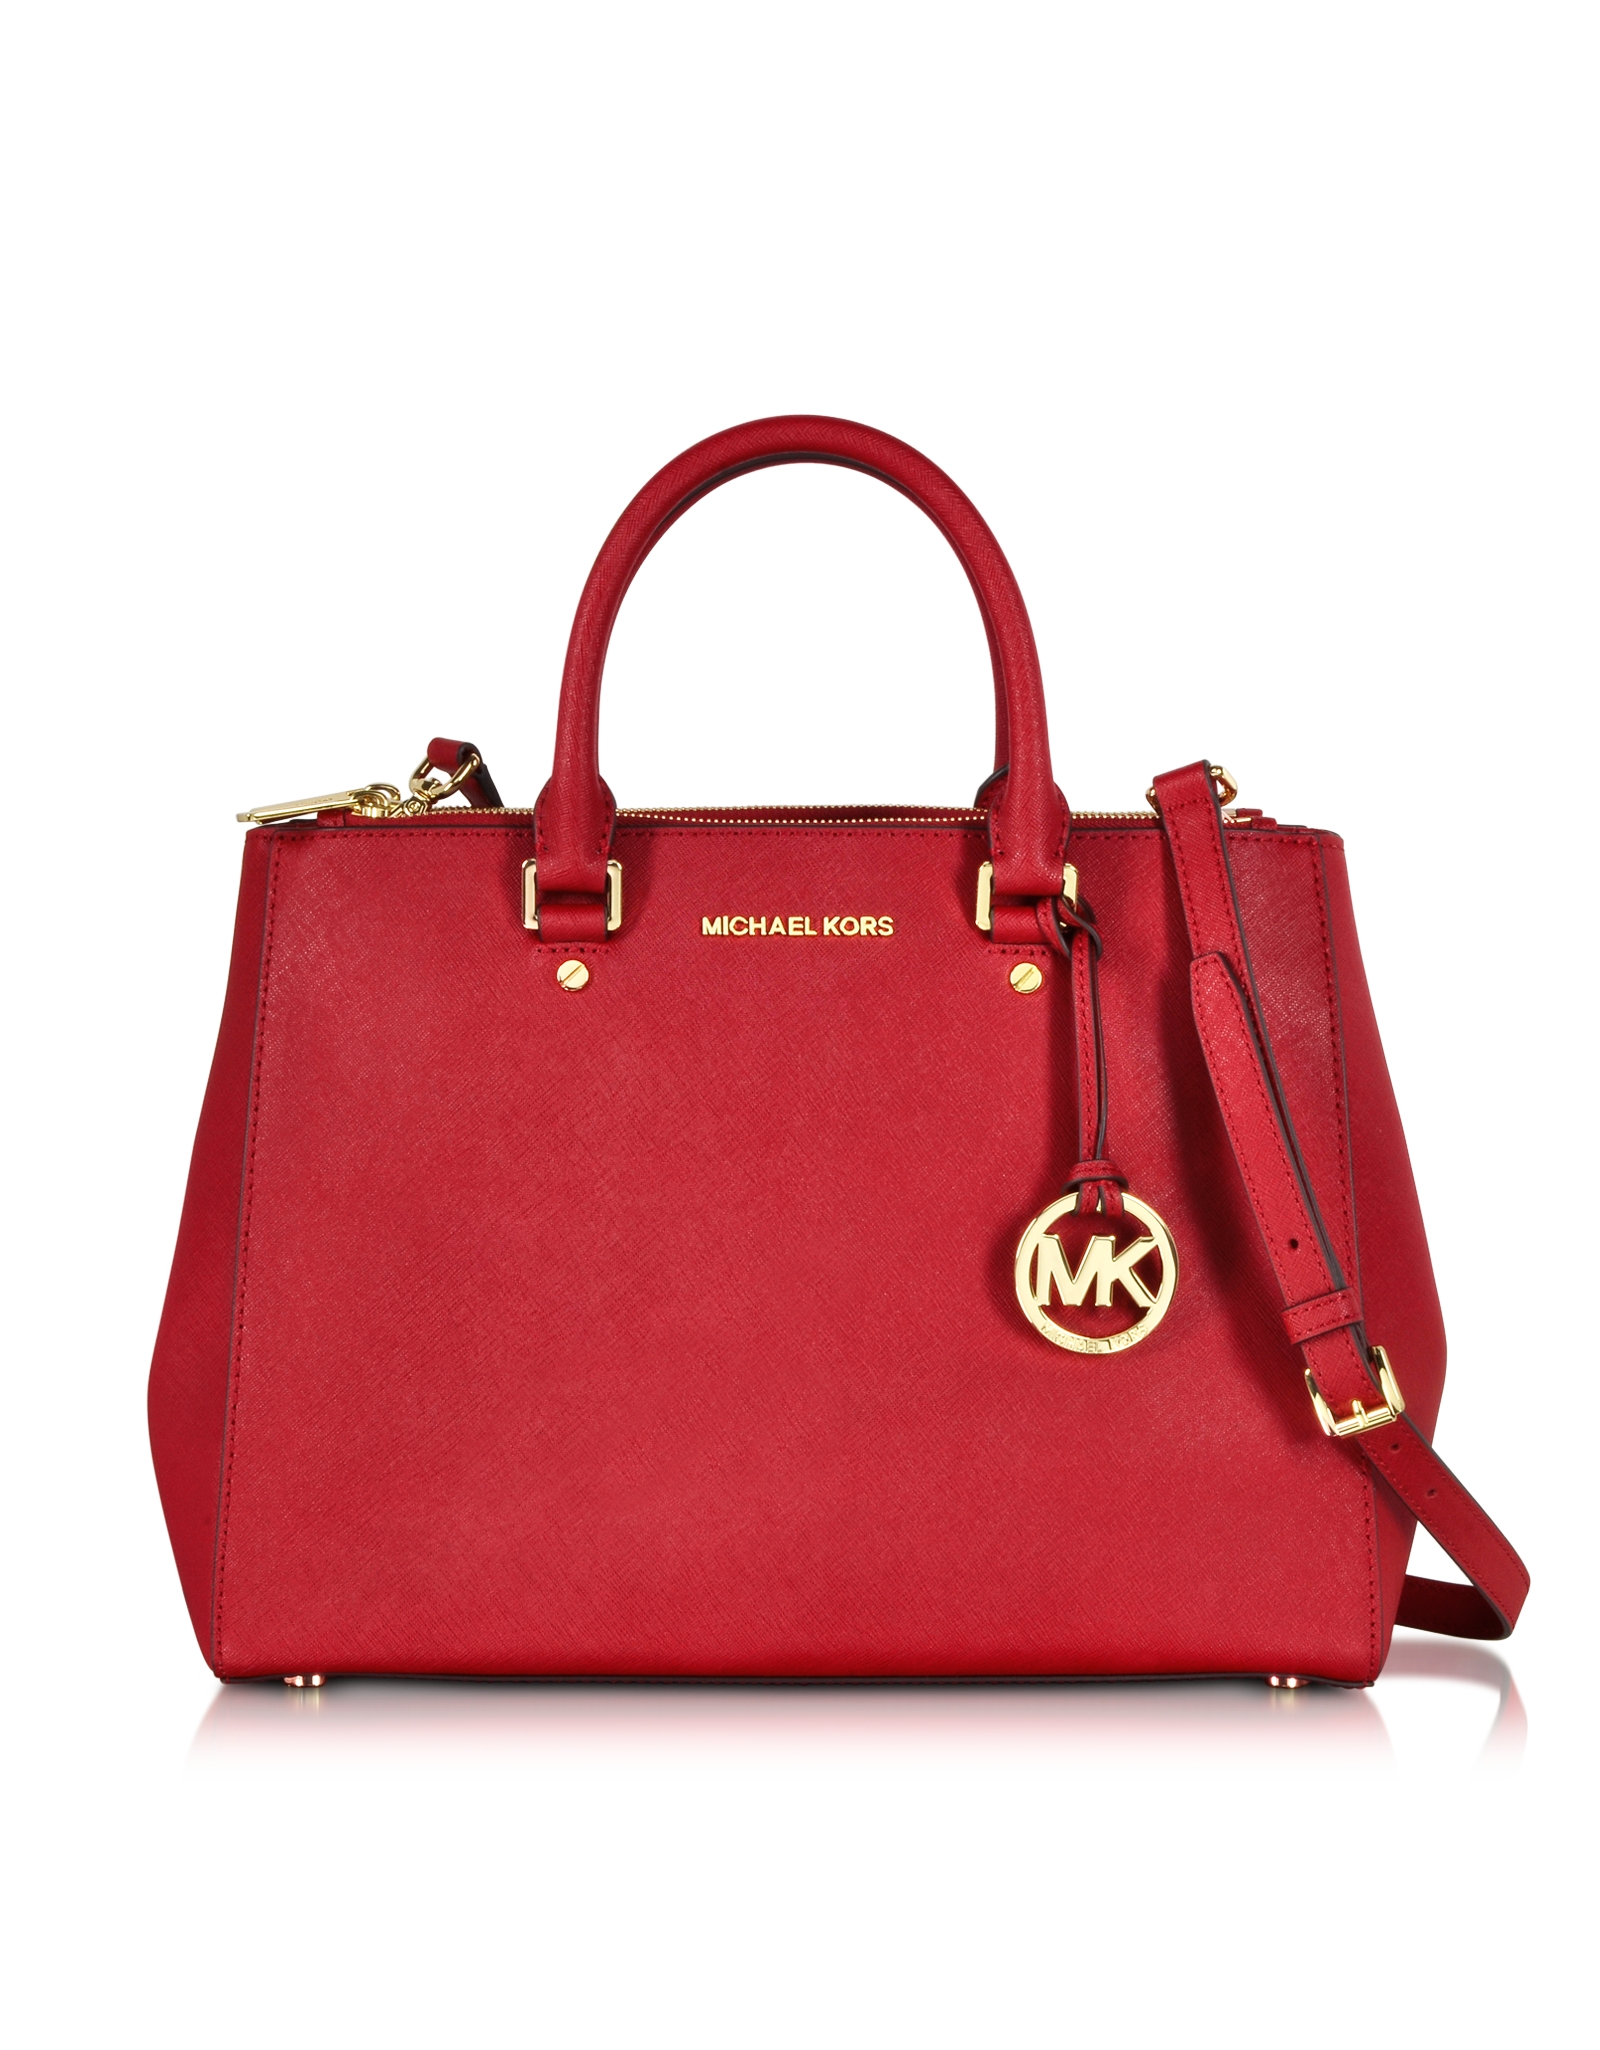 michael kors sutton saffiano leather large satchel in red. Black Bedroom Furniture Sets. Home Design Ideas